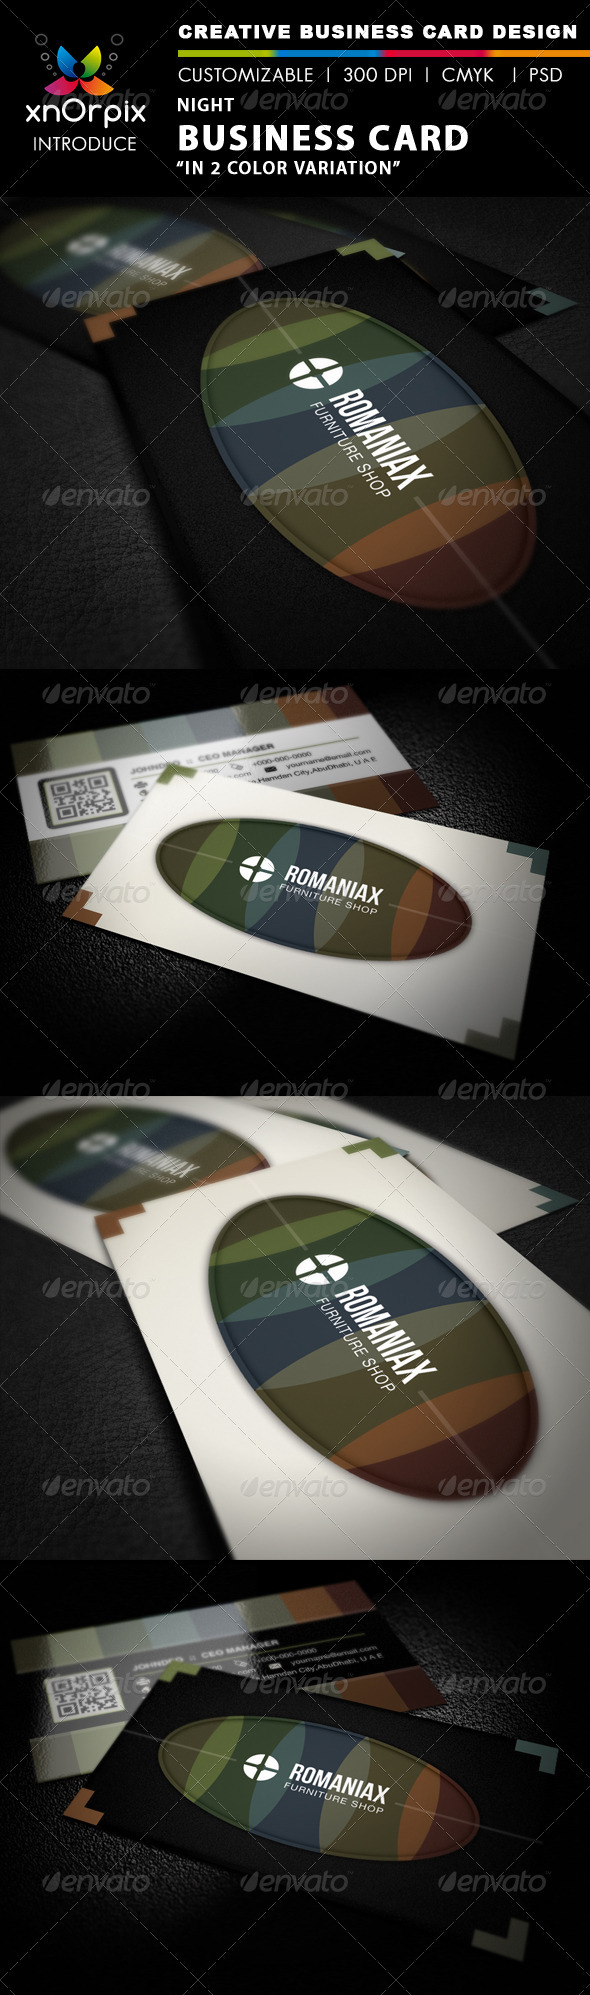 Night Business Card